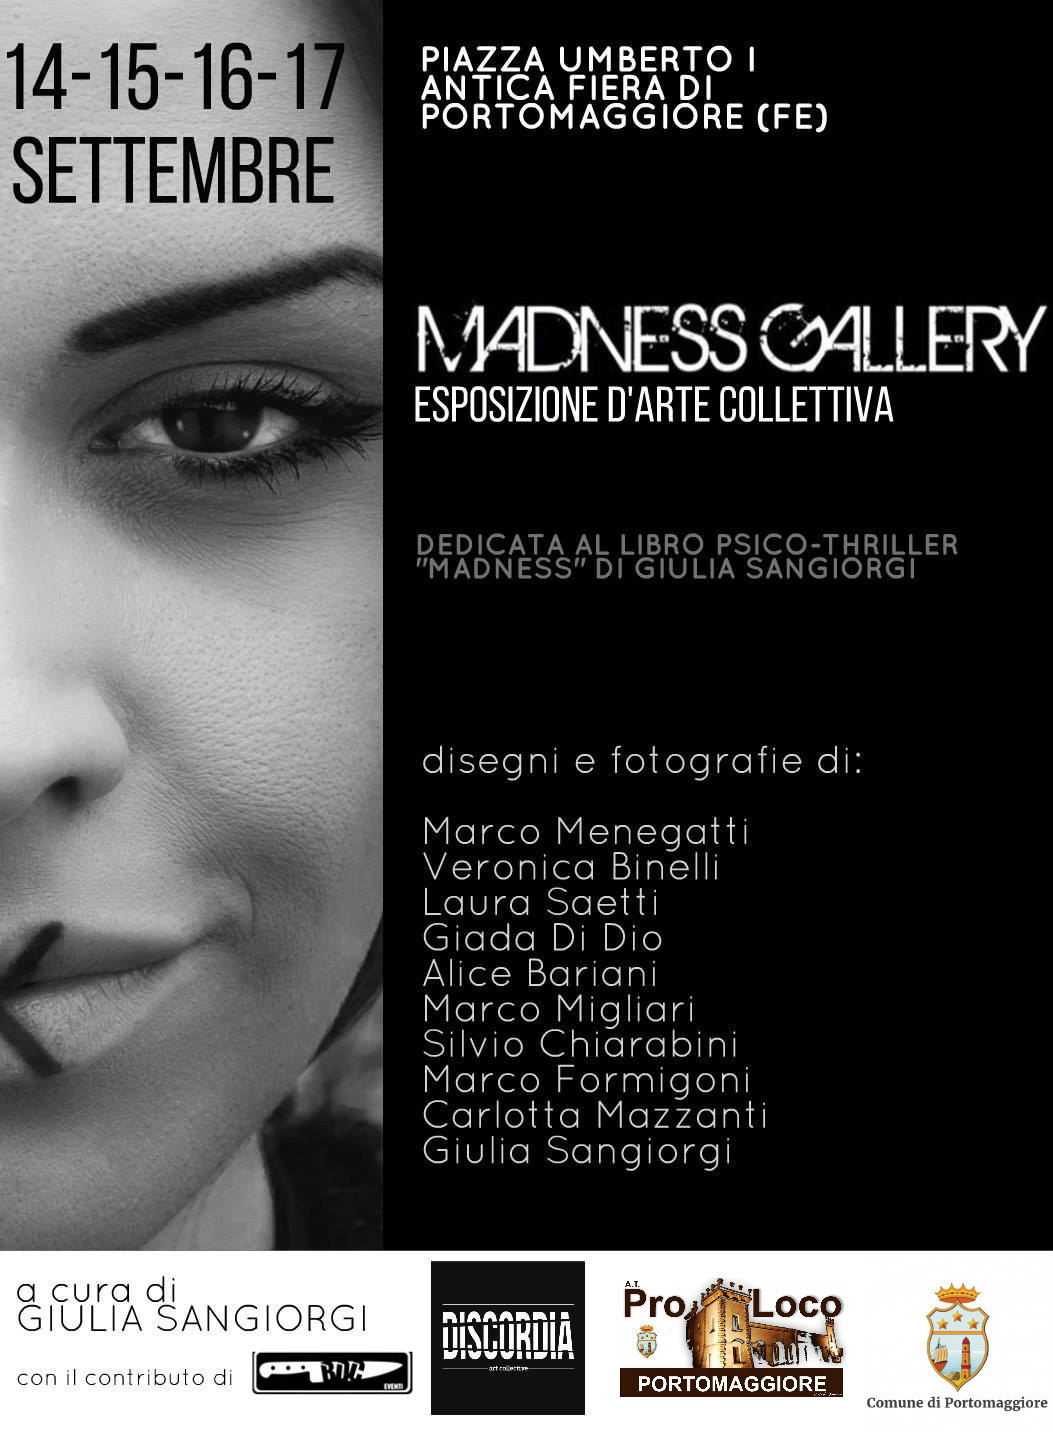 madness gallery